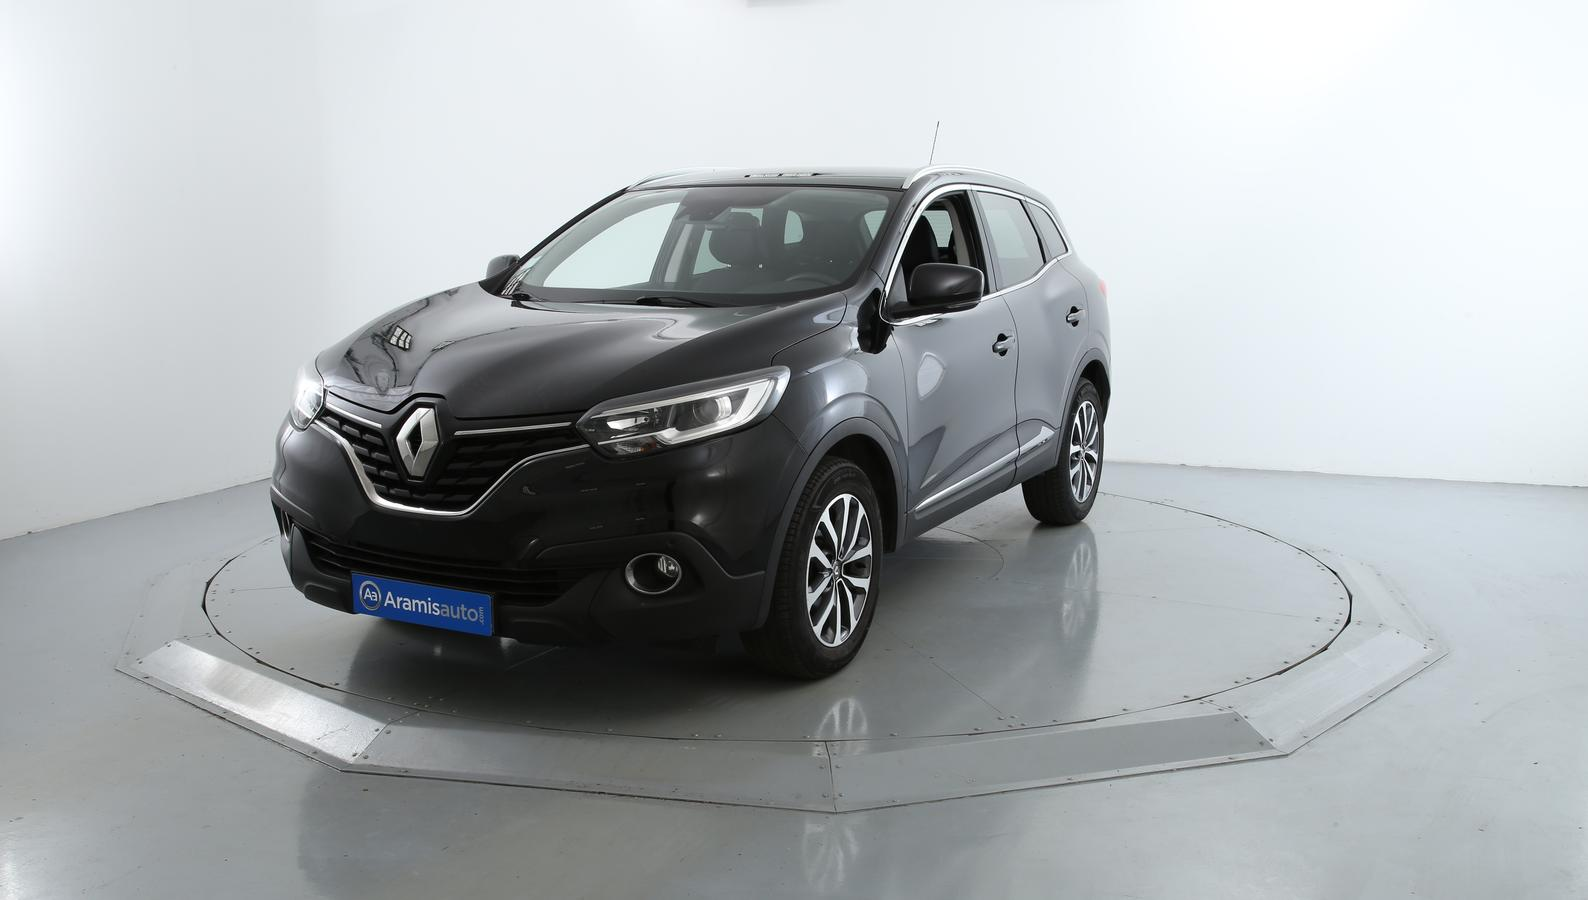 renault kadjar 4x2 et suv 5 portes diesel 1 5 dci. Black Bedroom Furniture Sets. Home Design Ideas